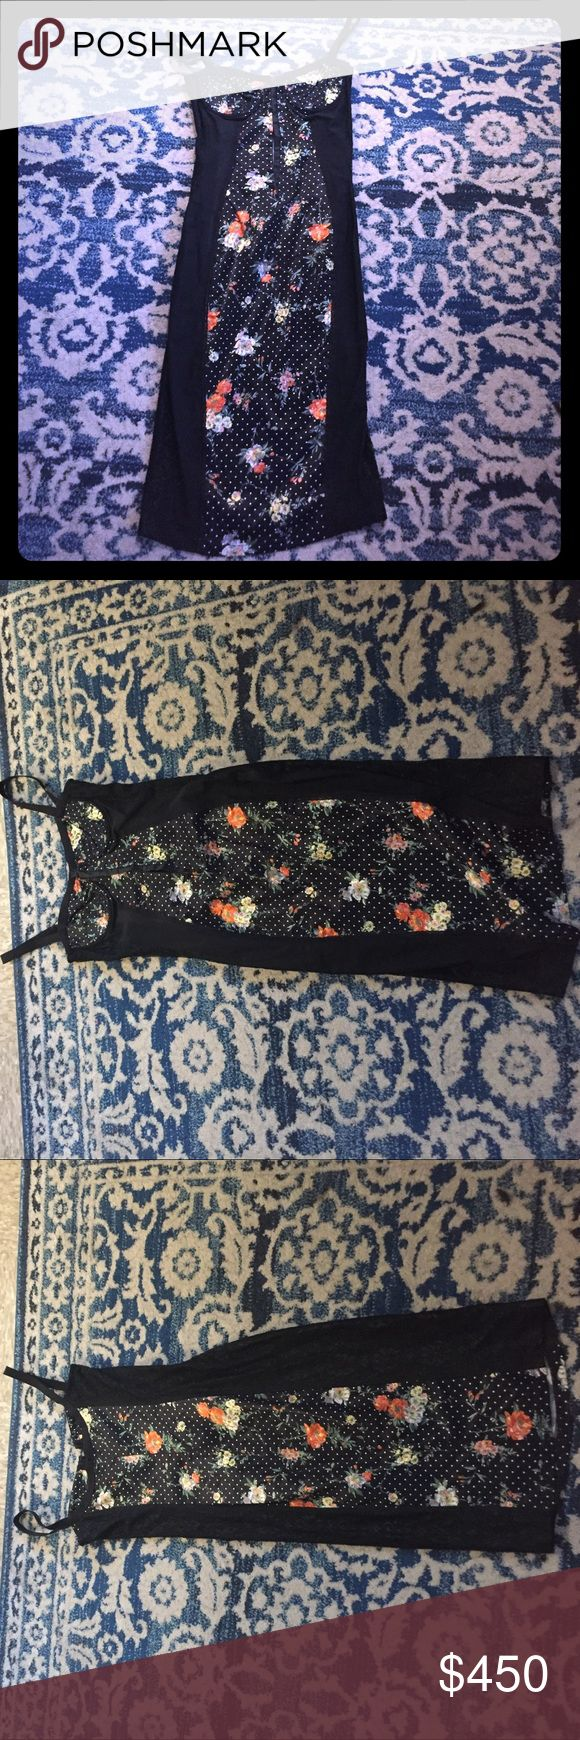 Dolce & Gabbana Floral Satin Corset Dress Authentic Dolce & Gabbana Black Floral Polka Dot Satin Corset Dress  -Pre Owned with little to no sign of wear -size 26 (US 4) -Satin/lace material and corset bralette style make it perfect for a night out on the town -Intricate lace and polka dot sultry design Dolce & Gabbana Dresses Midi